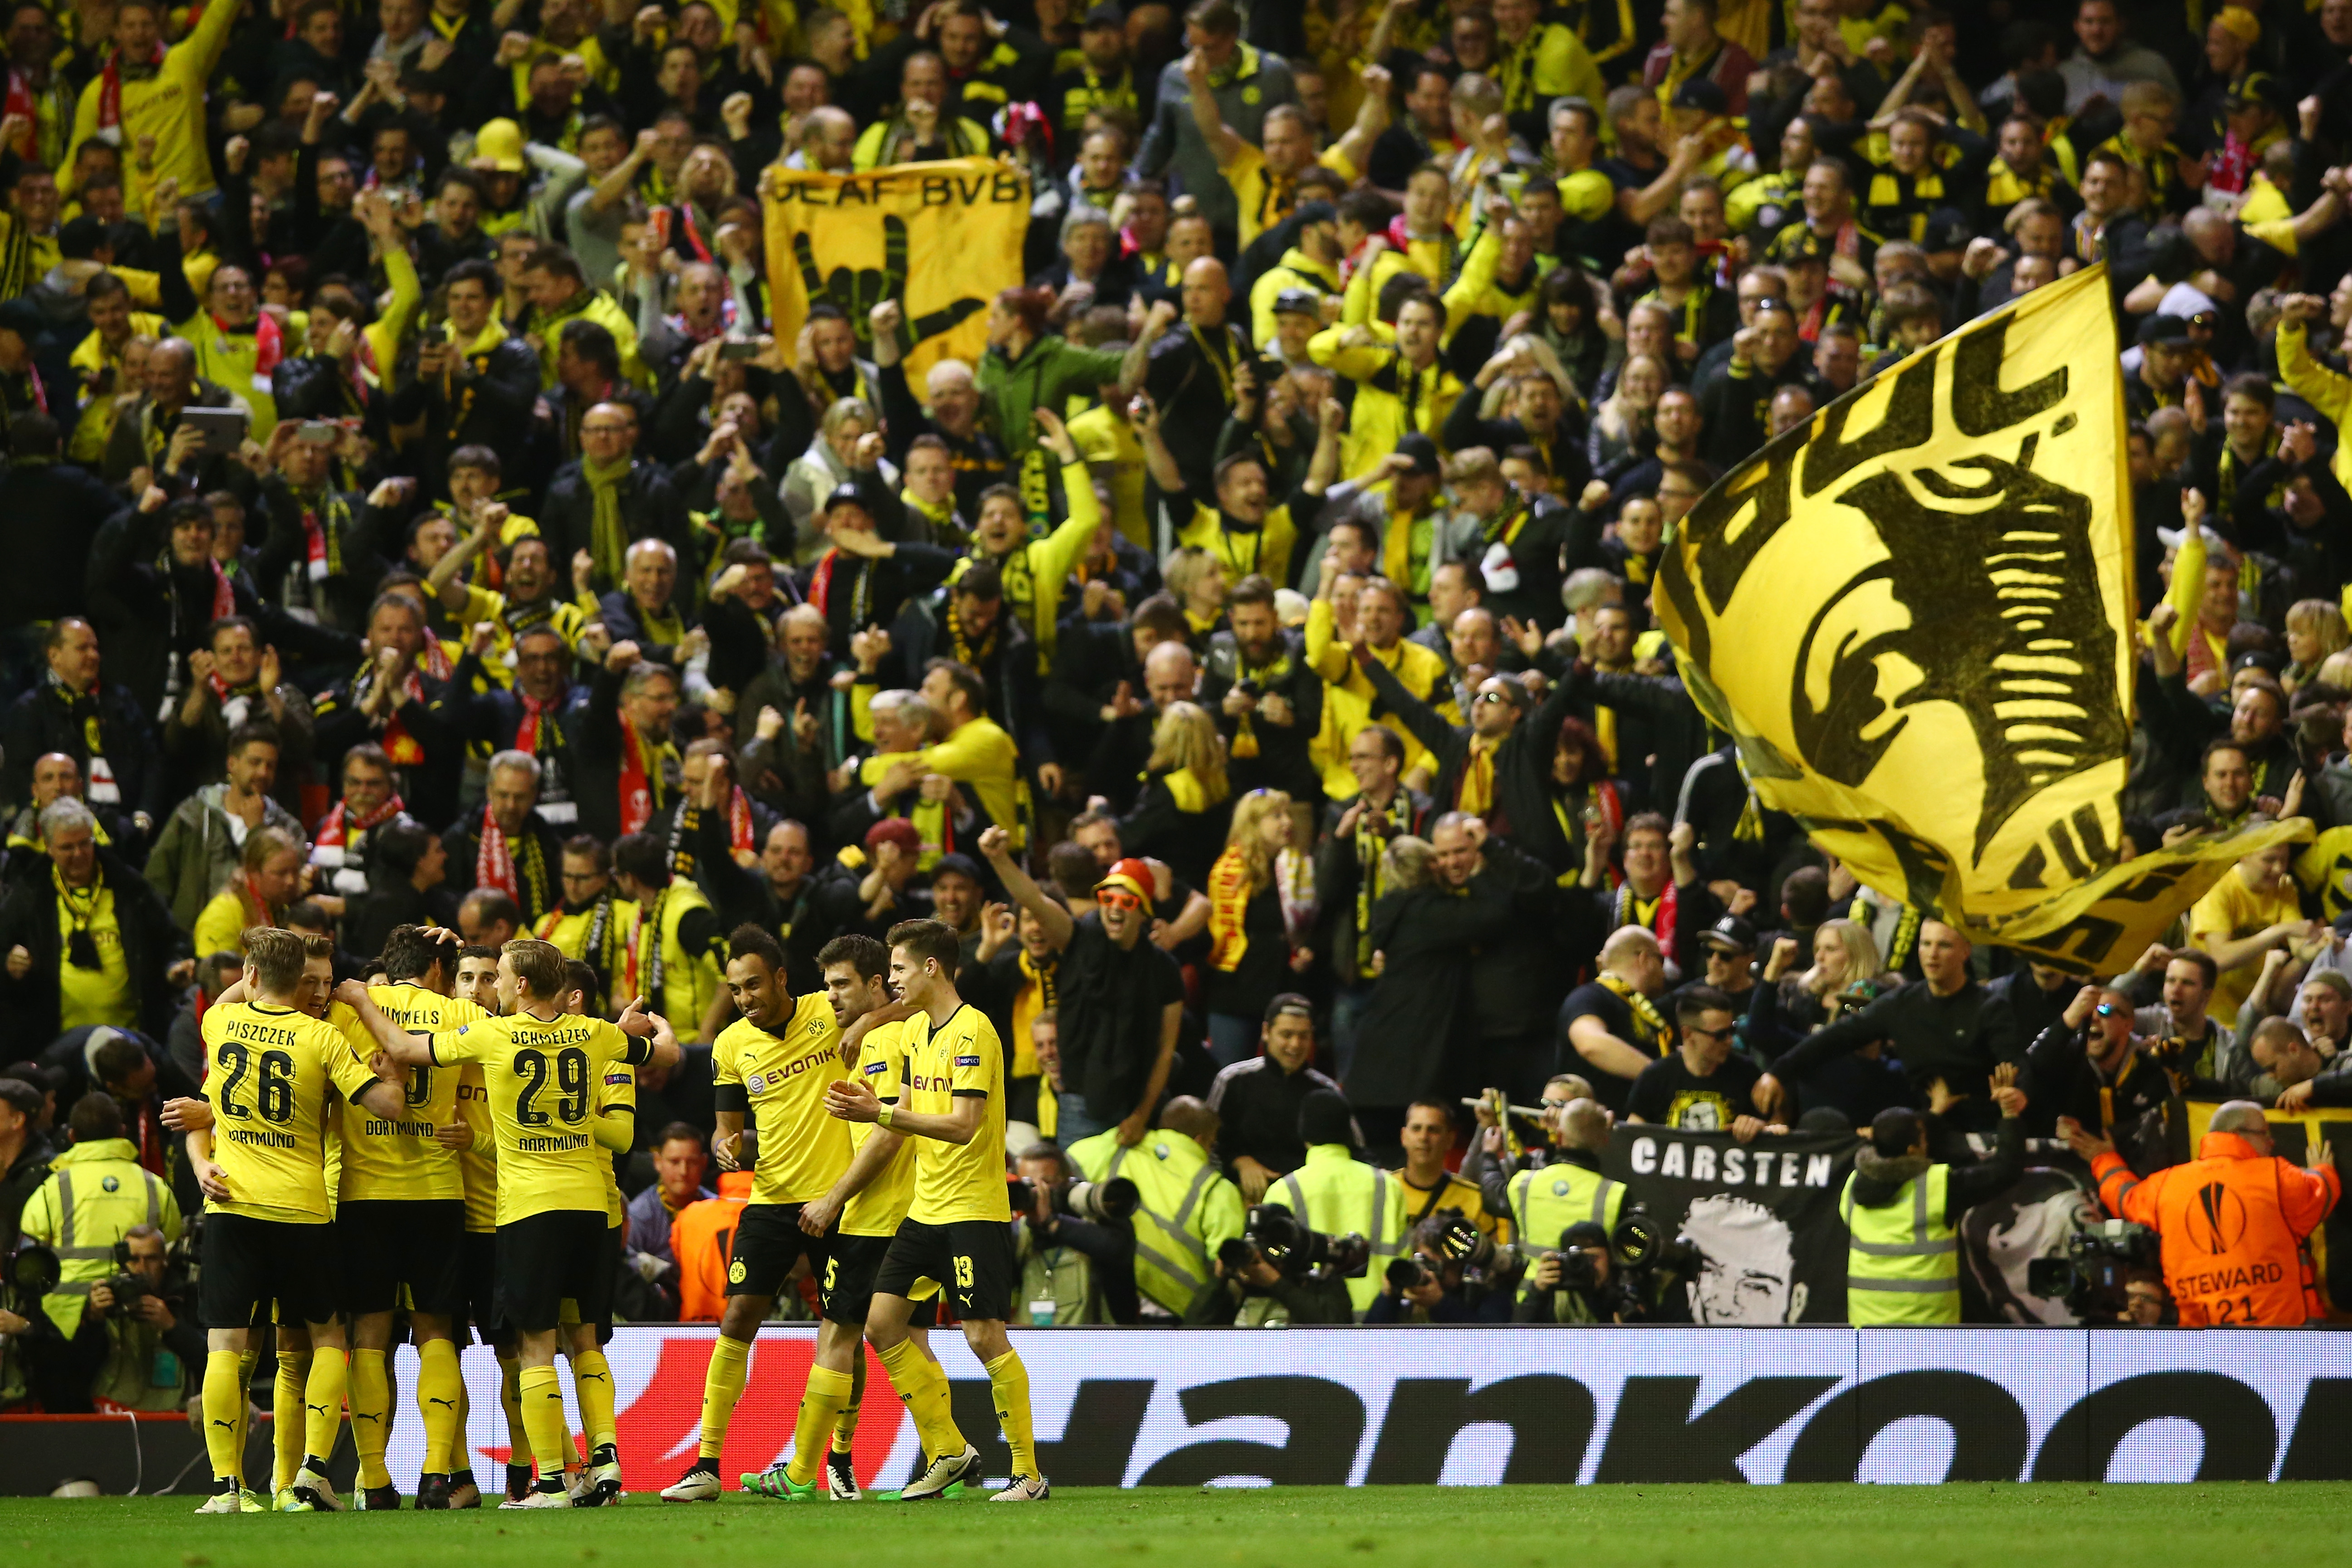 Facebook Dortmund Fear The Wall A Borussia Dortmund Community